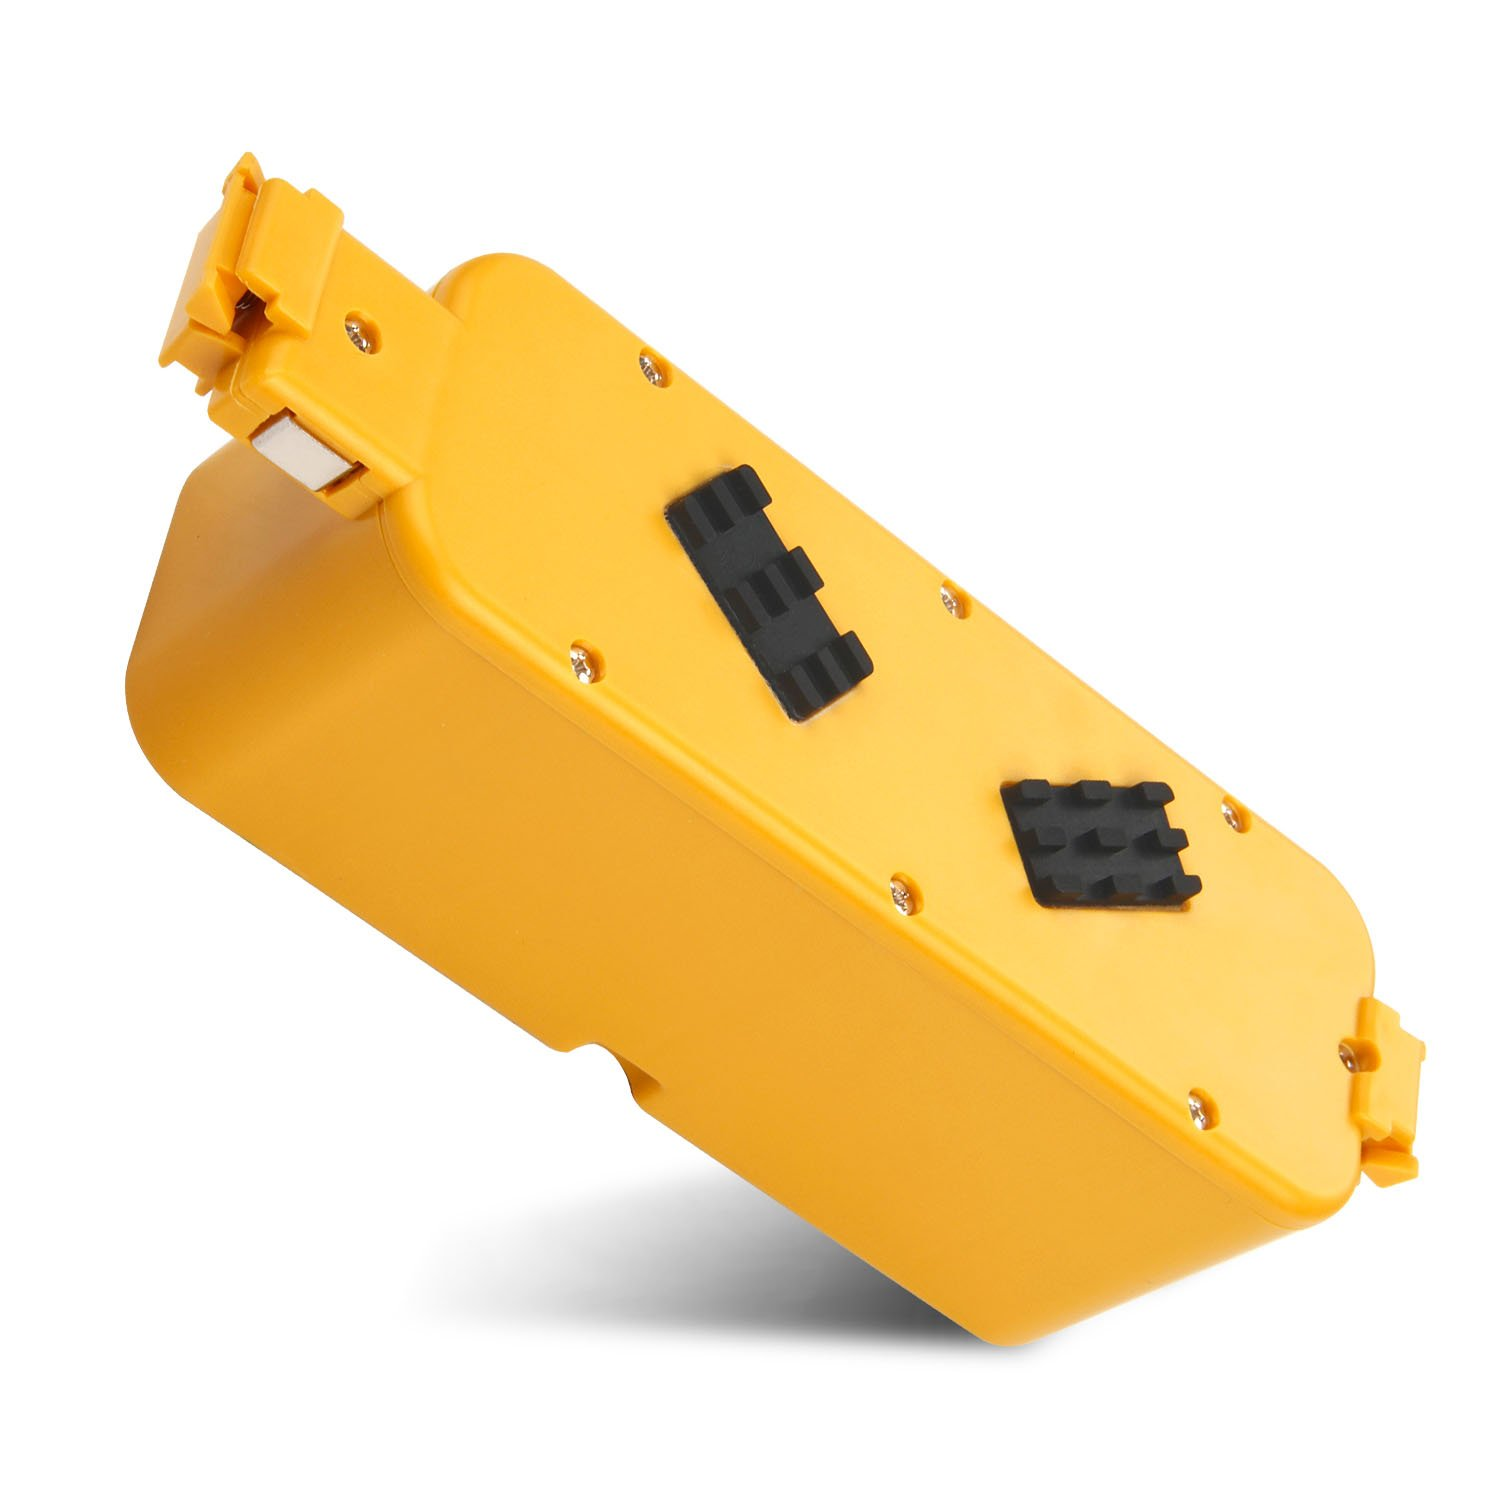 14.4V 3500mAh Ni-MH Replacement Battery for iRobot Roomba 400 series Roomba 400 405 410 415 416 418 4000 4100 4105 4110 4130 4150 4170 4188 4210 4220 4225 4230 4232 4260 4296 Vacuum Cleaner (1-pack) by Fancy Buying